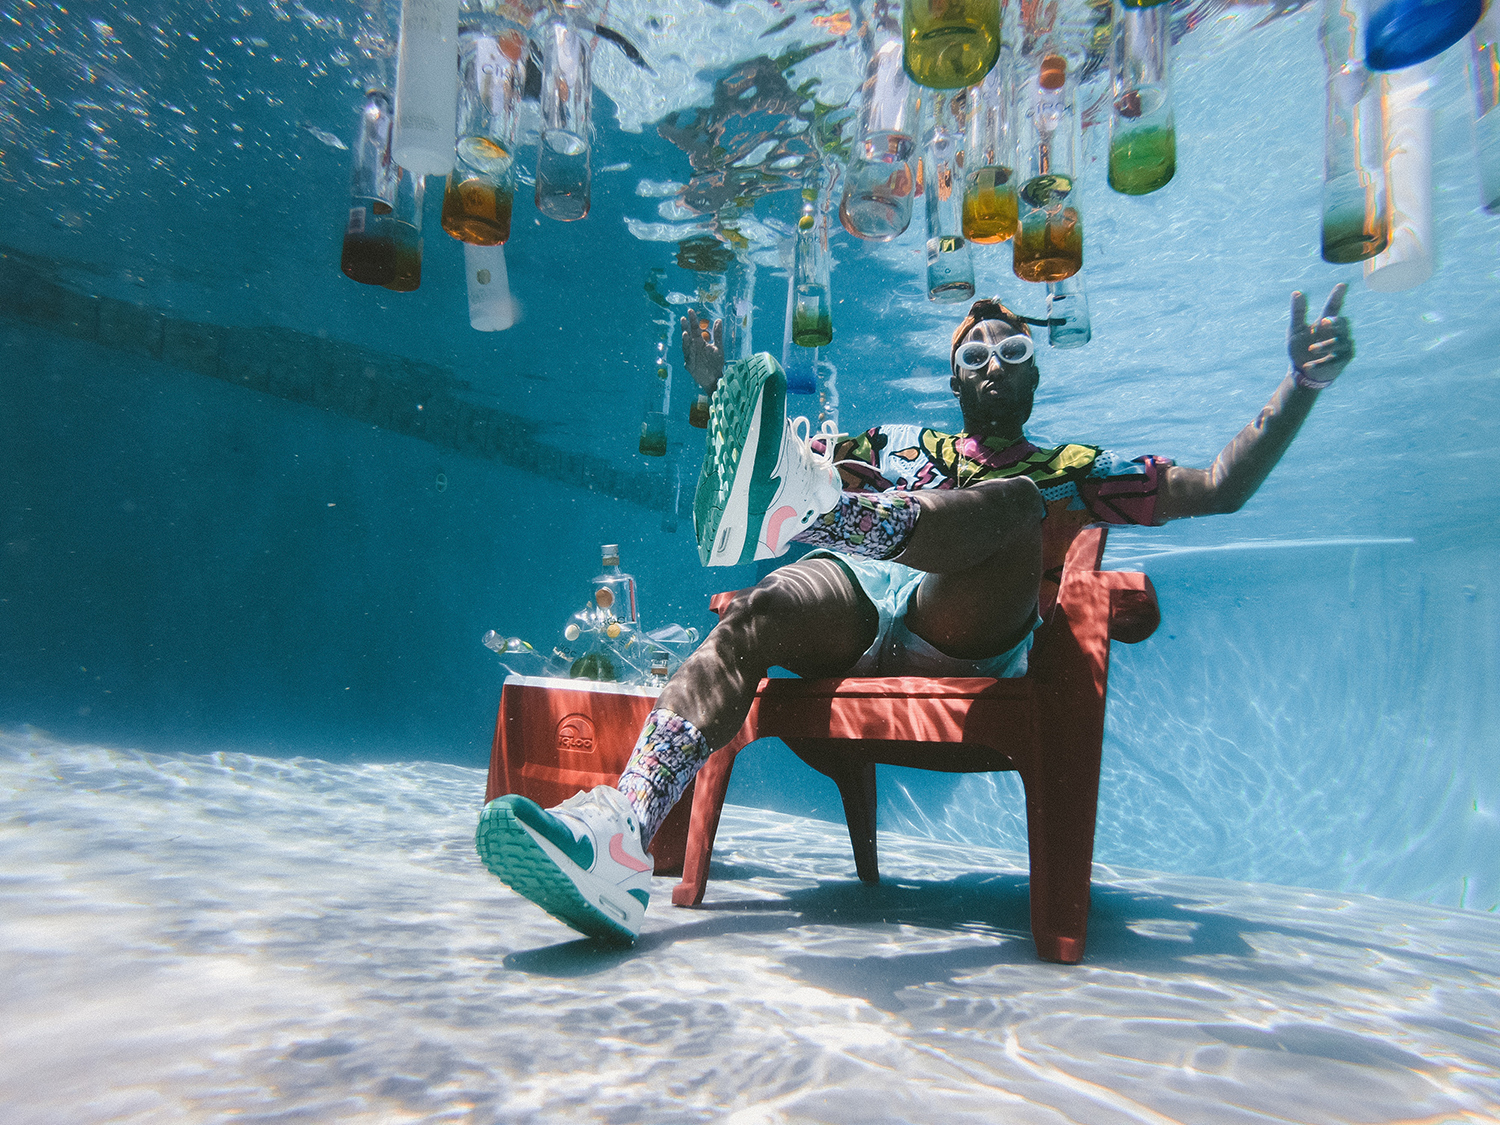 Guy sitting on a chair underwater